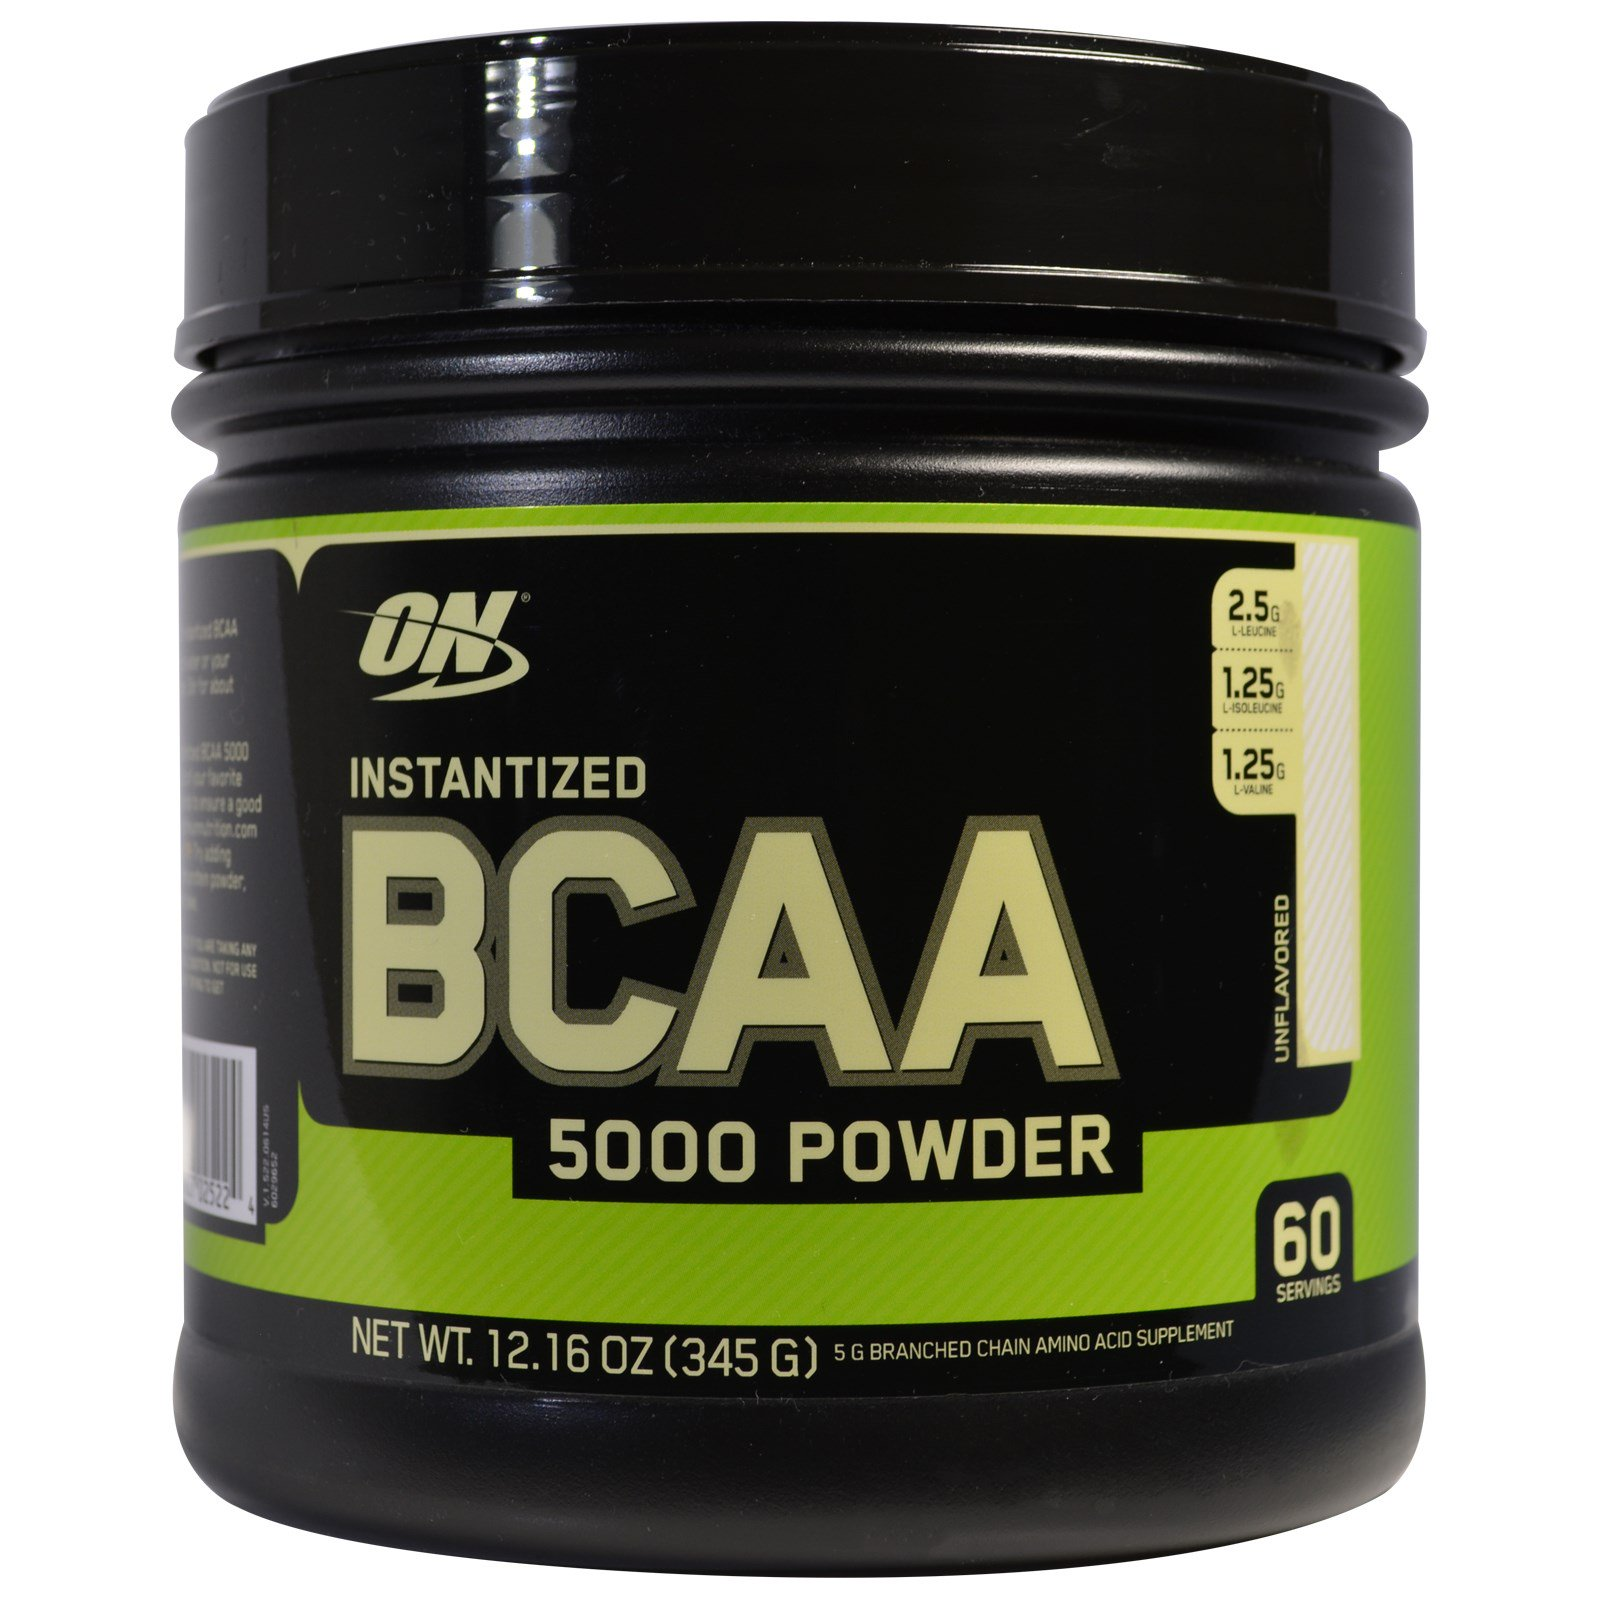 OPTIMUM NUTRITION'S GOLD STANDARD % Whey uses pure Whey Protein Isolates as the primary ingredient. Combined with ultra-filtered whey protein concentrate, each serving provides 24 grams of all-whey protein and grams of naturally occurring Branched Chain Amino Acids (BCAAs) which are prized by athletes for their muscle building qualities.